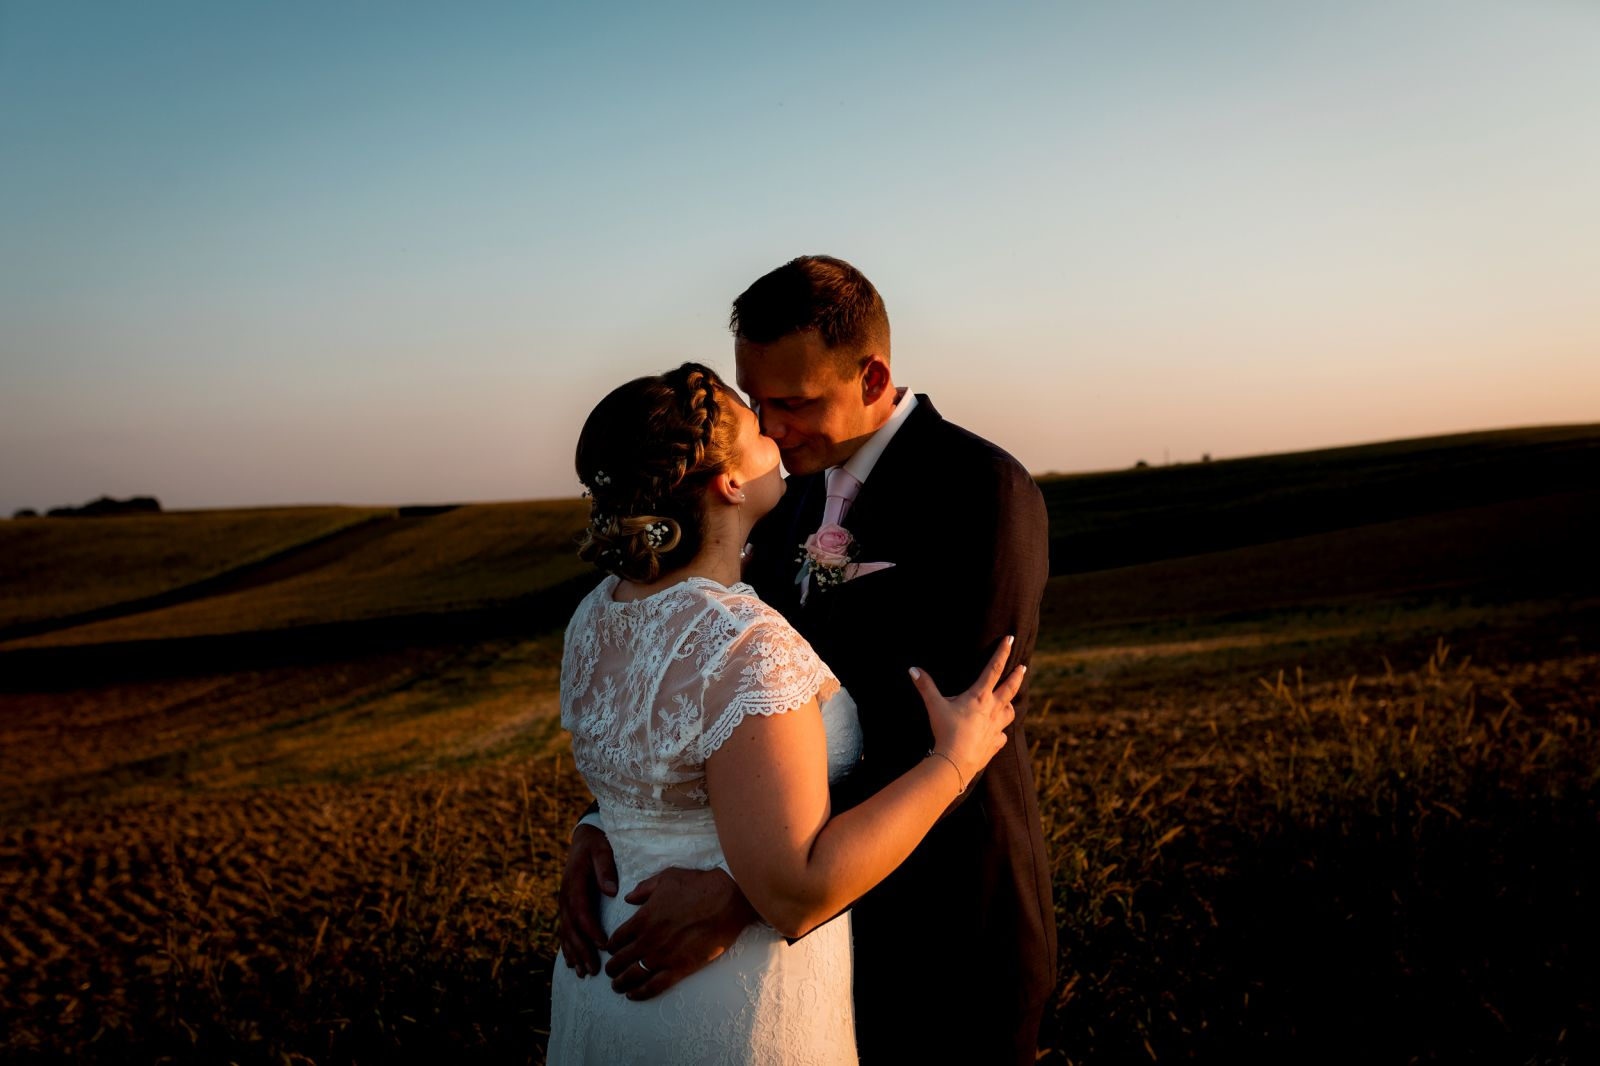 photographe mariage vosges alsace du nord wissembourg campagne